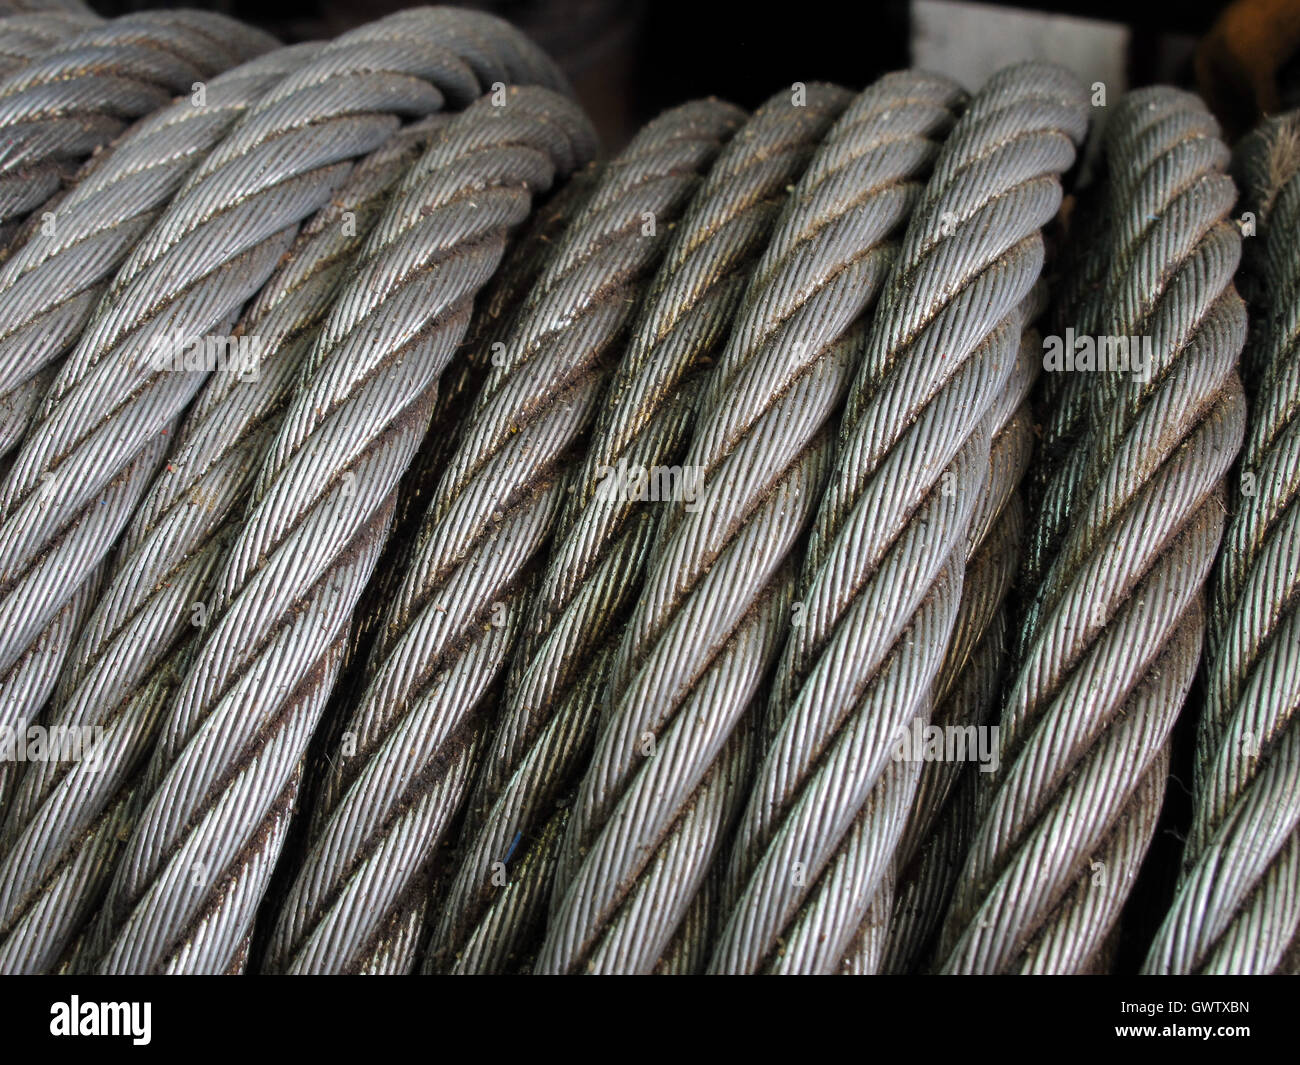 Rusty Iron Rope Coil Closeup Stockfotos & Rusty Iron Rope Coil ...